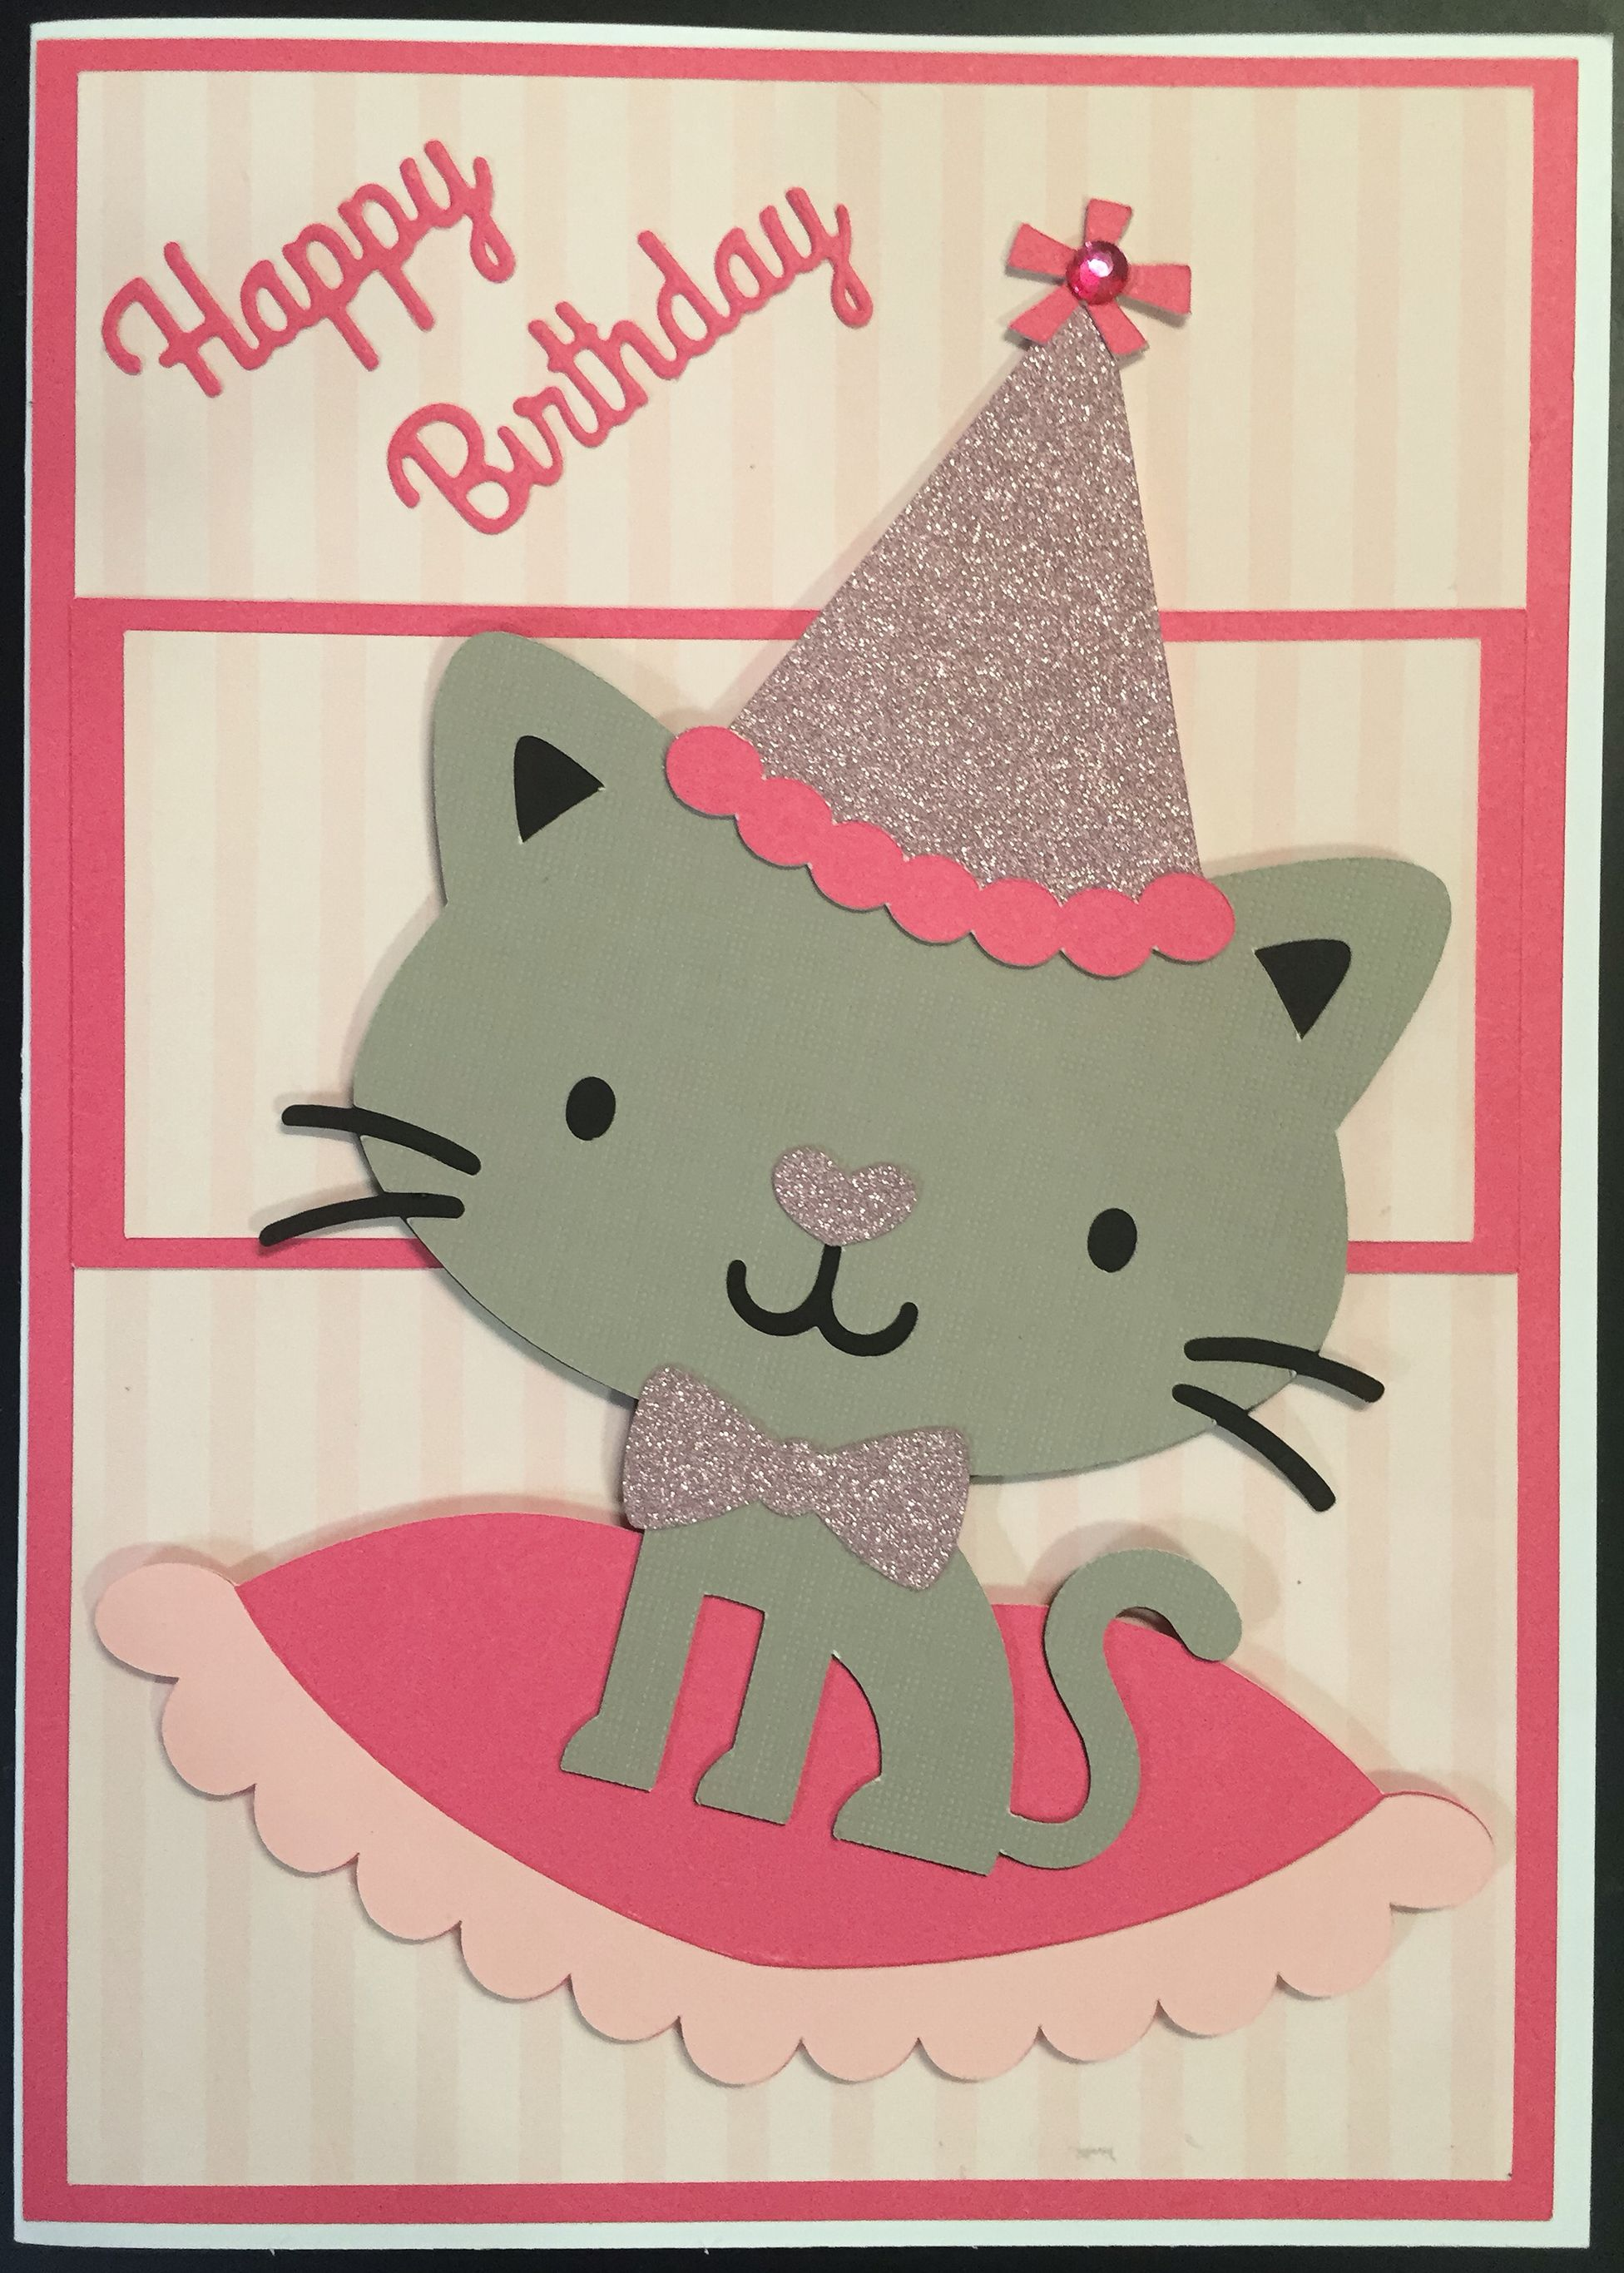 Homemade kids birthday card cricut create a critter cards homemade kids birthday card cricut create a critter bookmarktalkfo Image collections